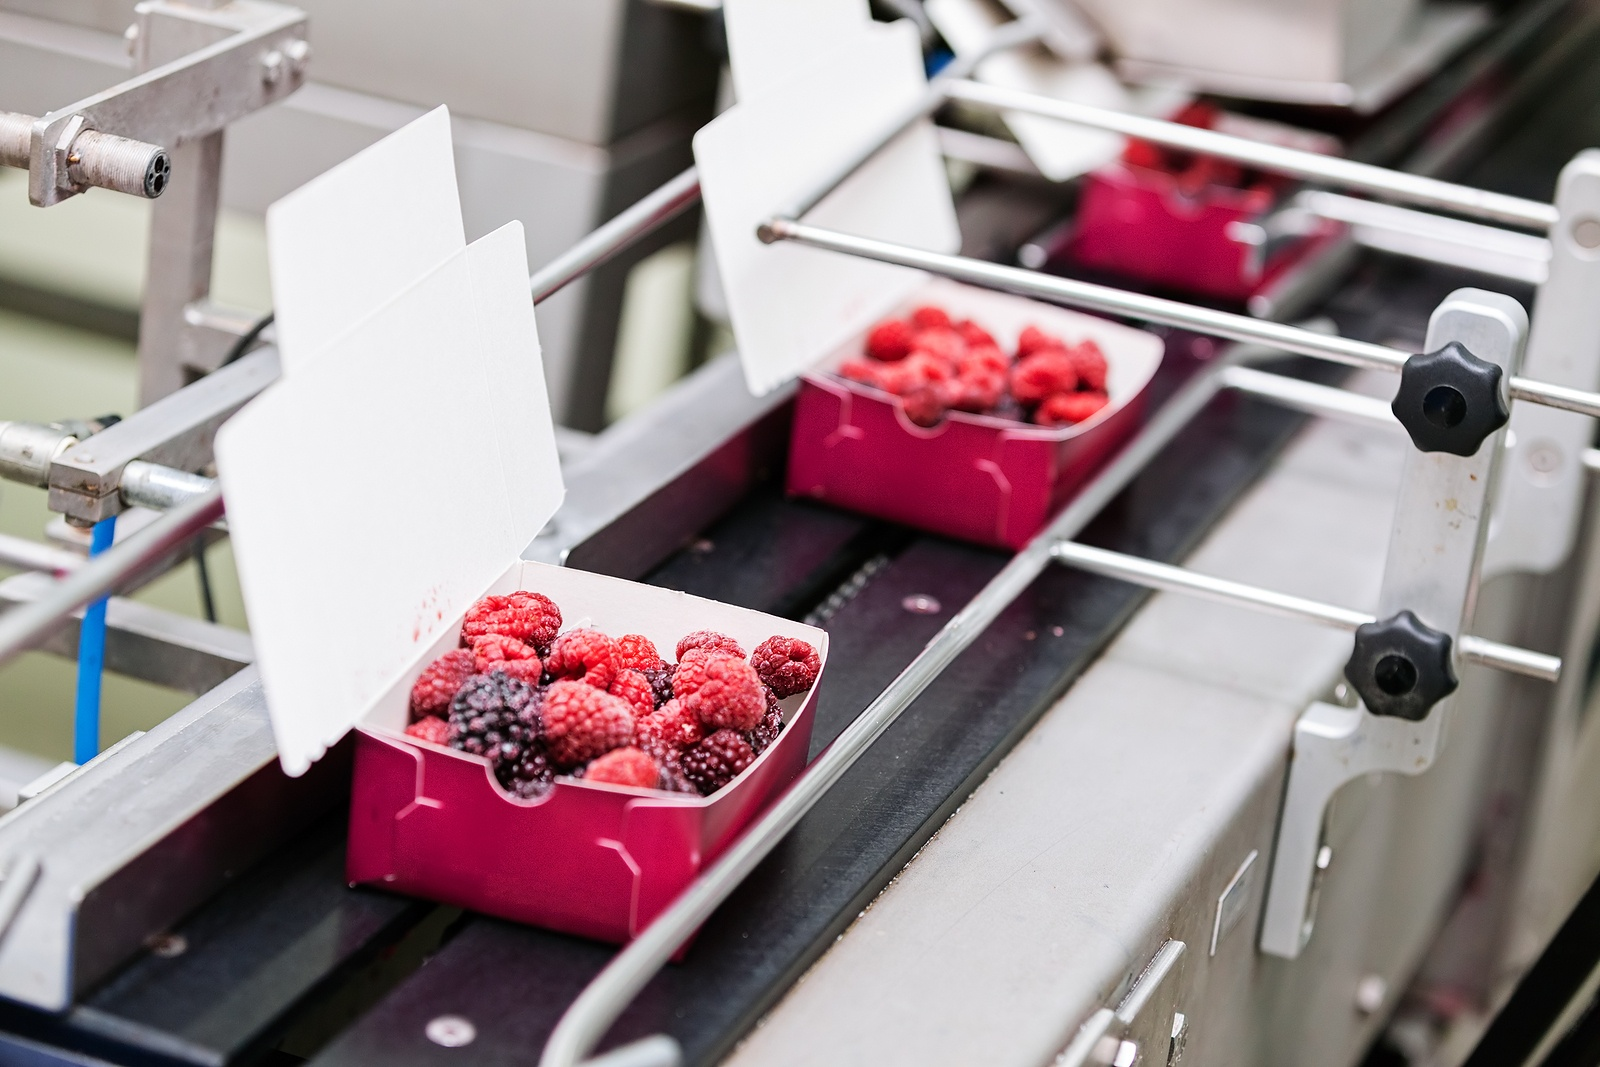 frozen raspberries being packaged